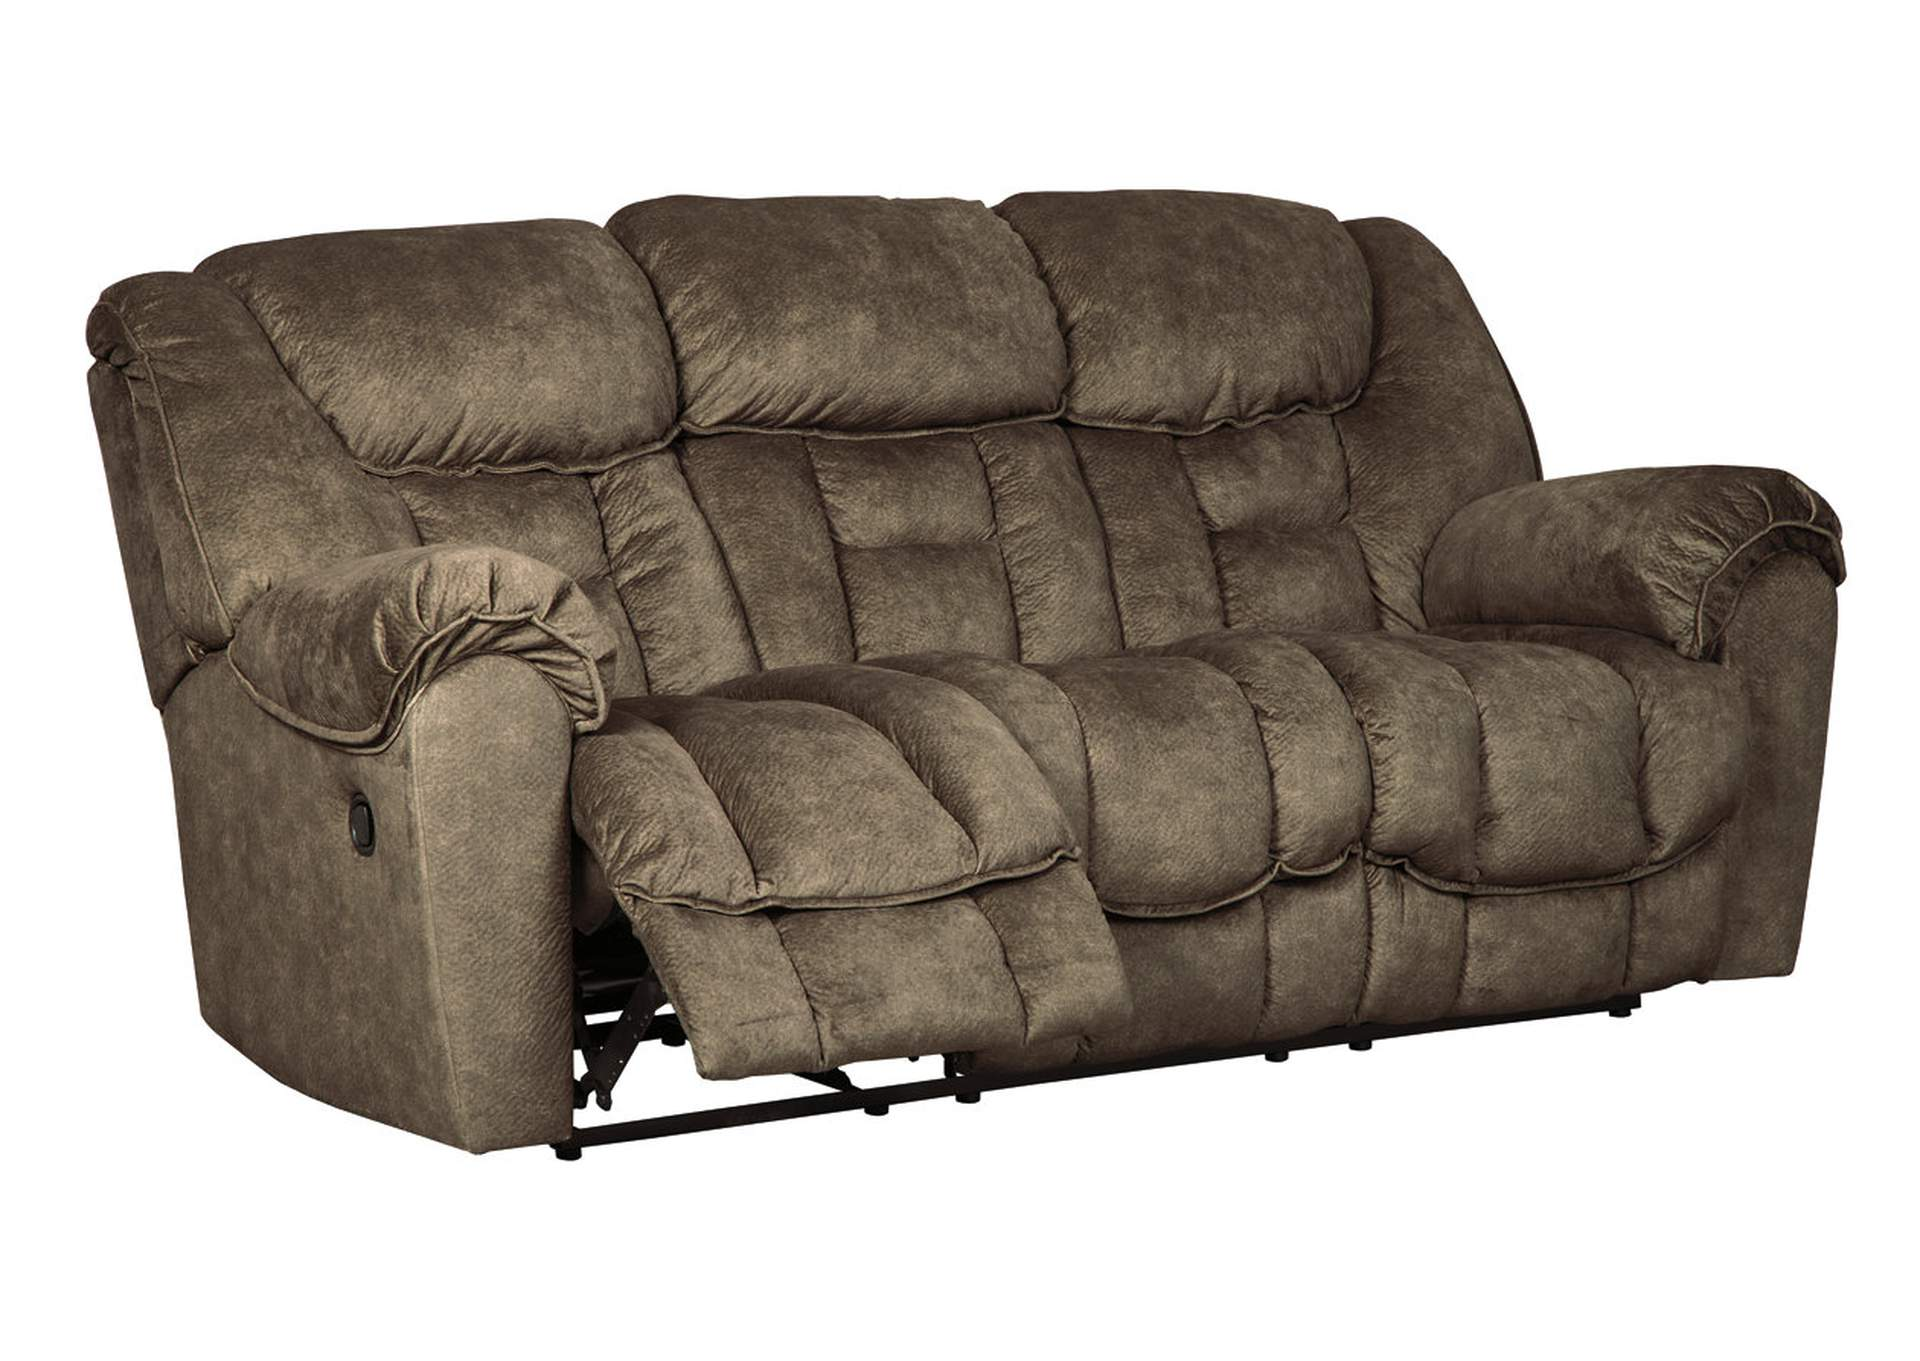 Capehorn Earth Reclining Sofa,Signature Design By Ashley